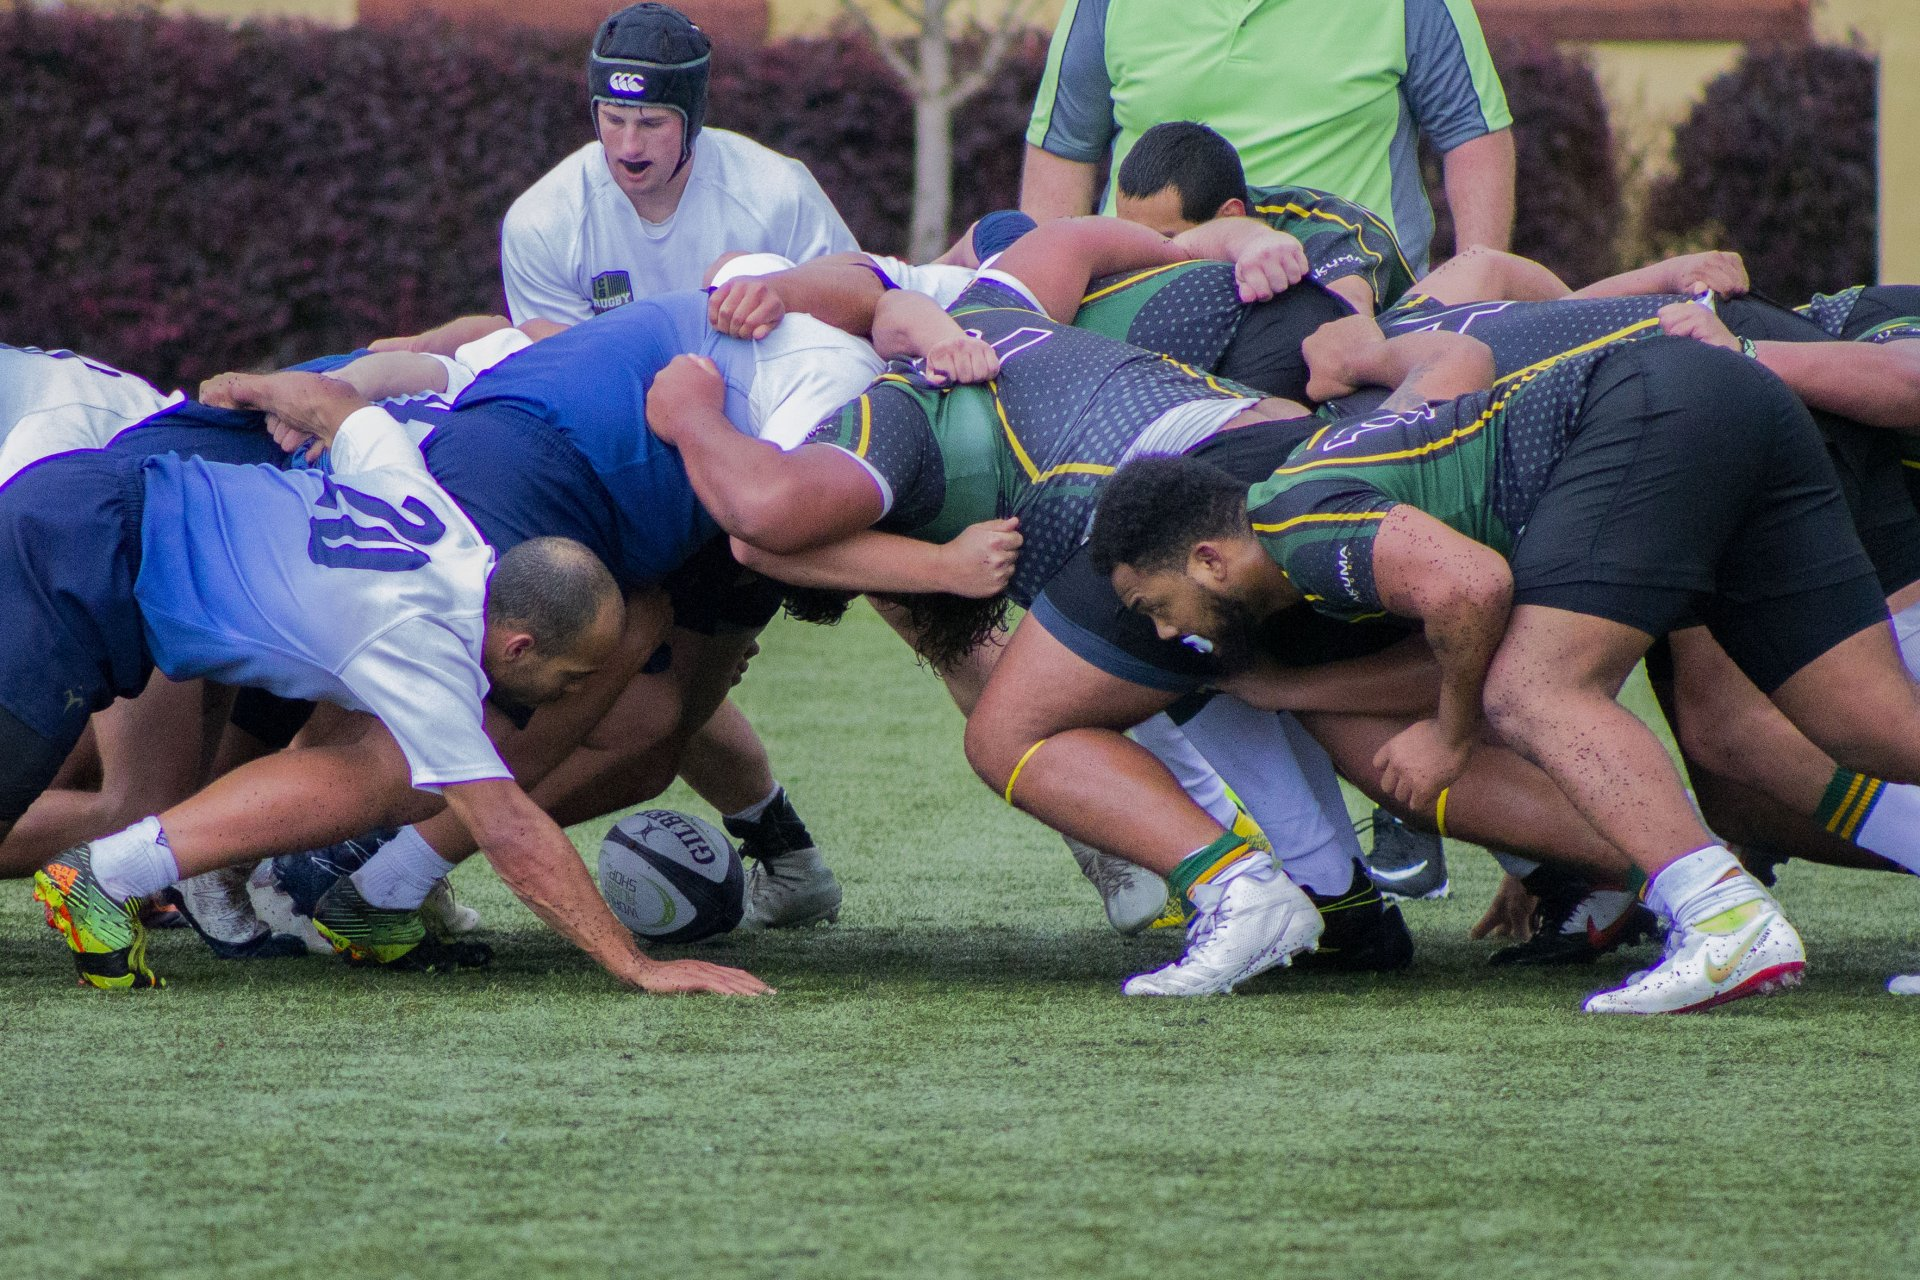 The HSU Men's Rugby Team battle it out in a scrum against CSUMB on the way to a 24-22 victory at home on Feb. 9, 2019. | Photo by Thomas Lal